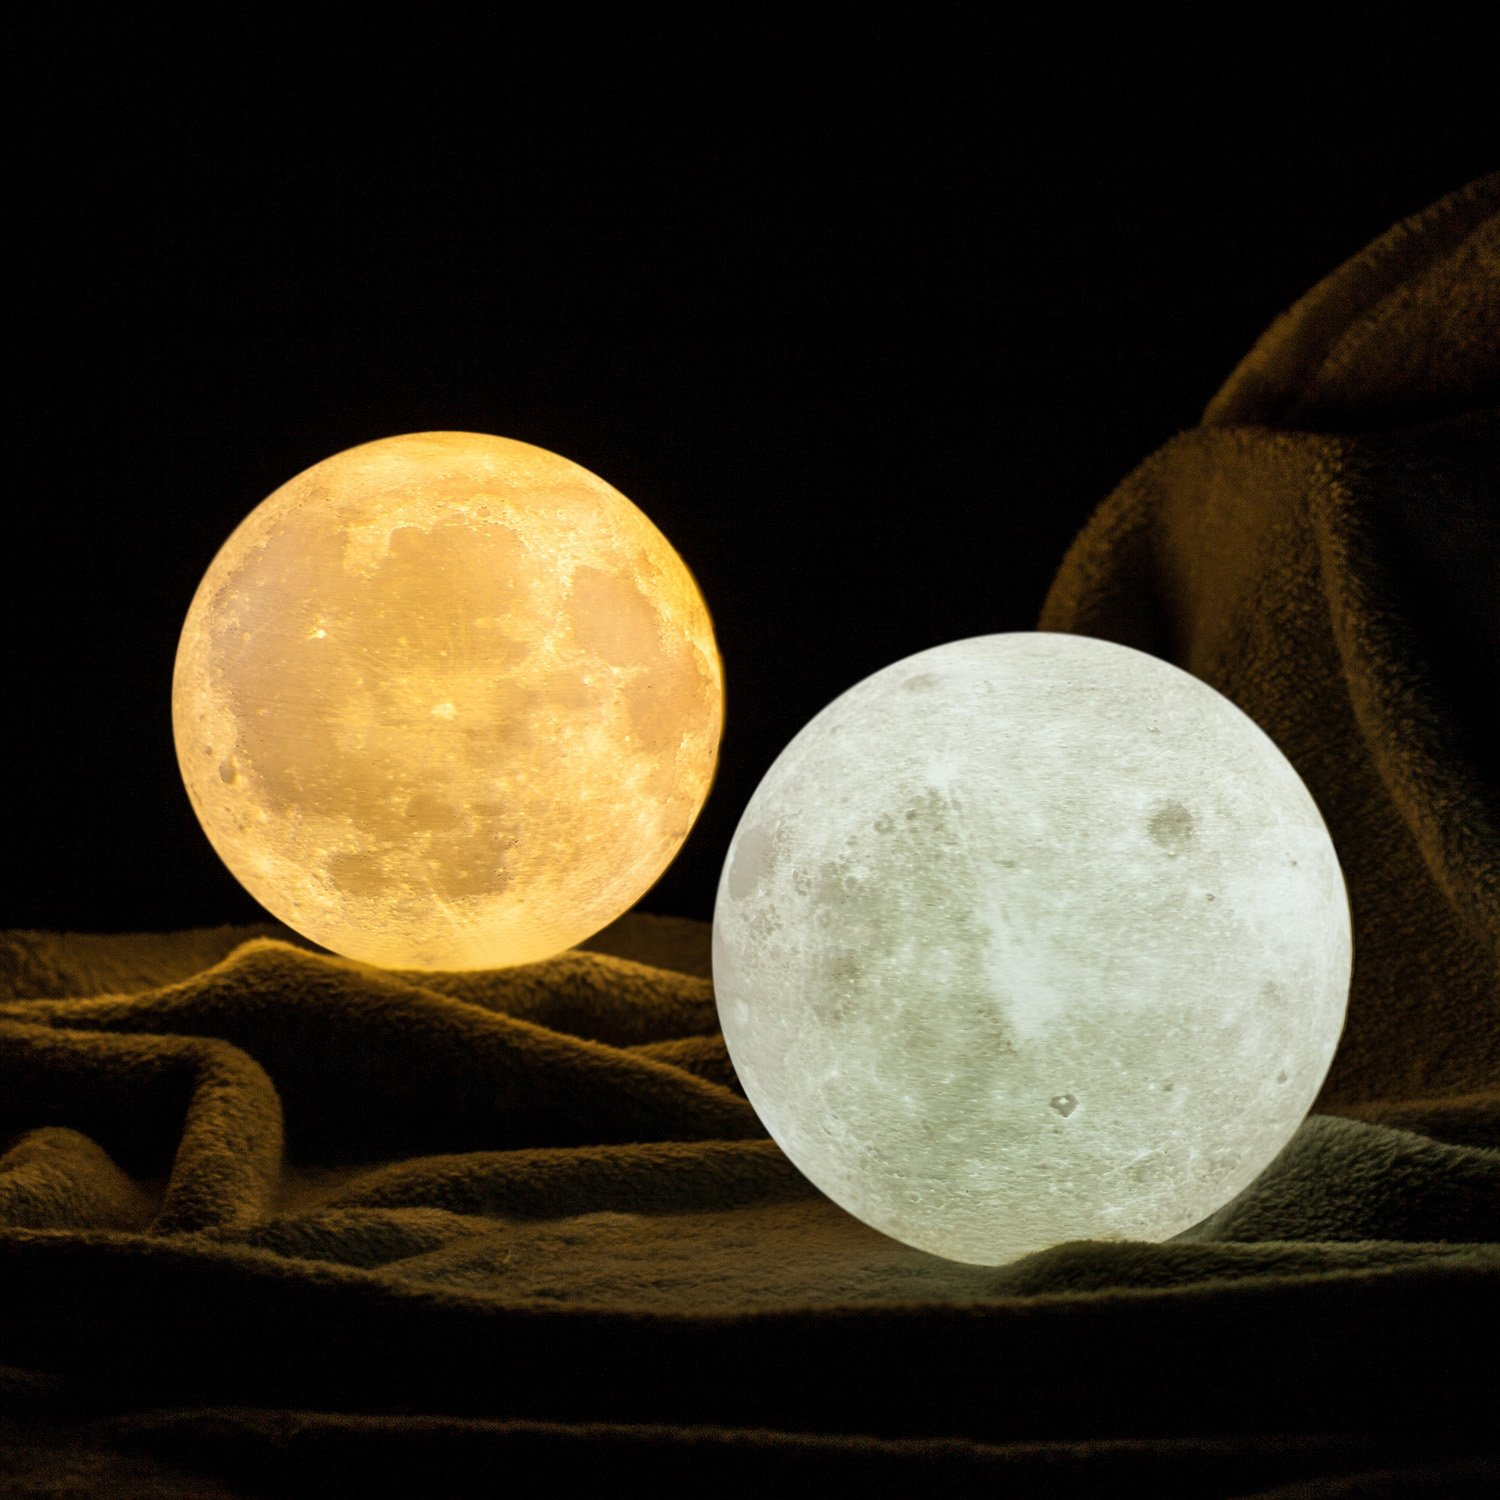 Amazon gpjoy moon lamp 3d printing moon night light amazon gpjoy moon lamp 3d printing moon night light rechargeable lunar night light dimmable touch control brightness warm and cool white arubaitofo Image collections